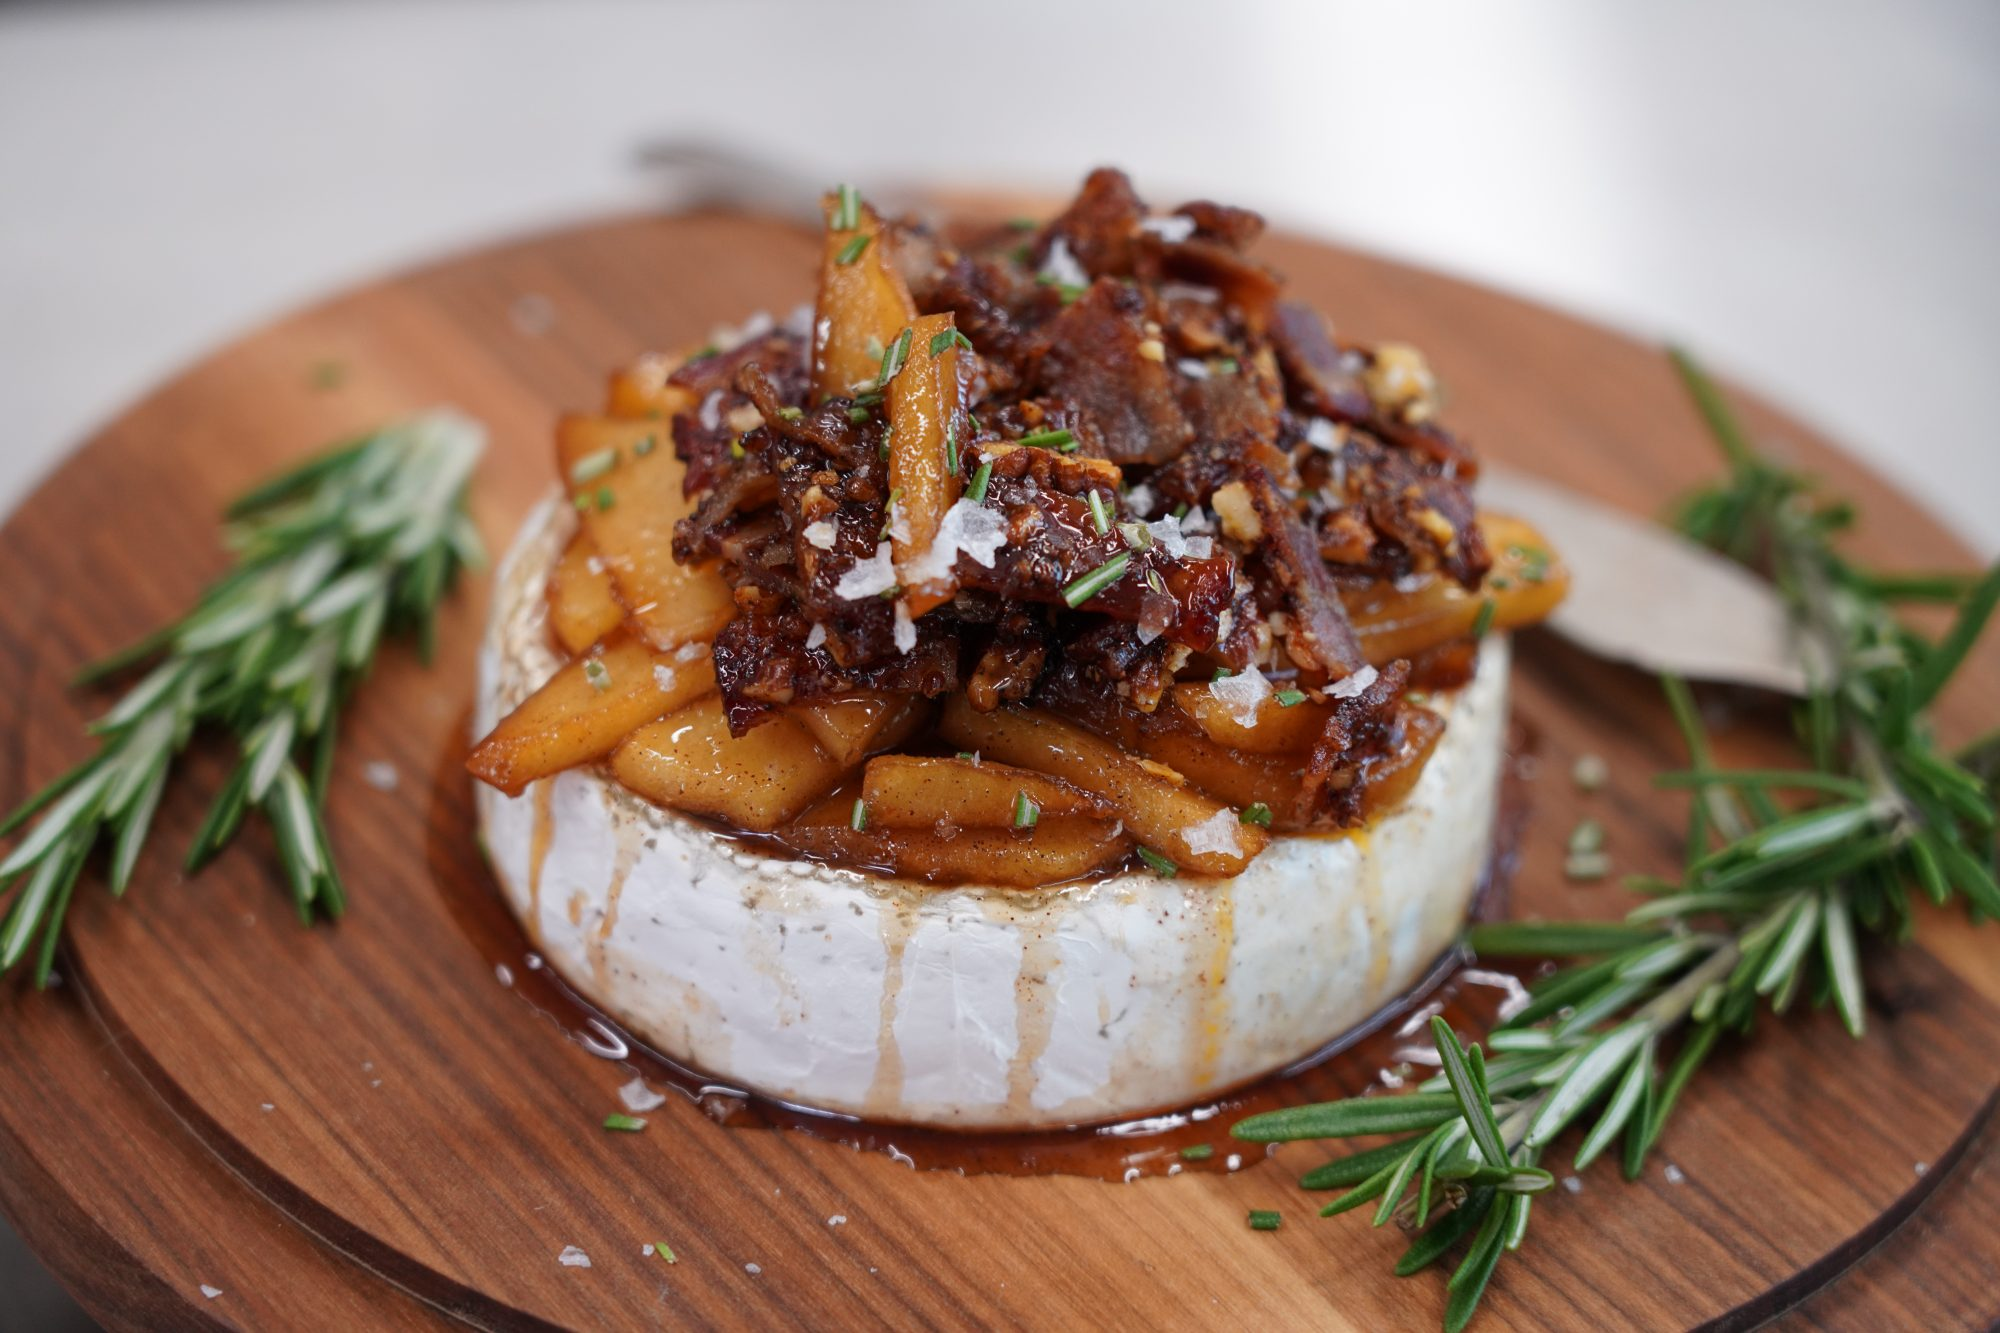 portrait shot apple and bacon-topped brie